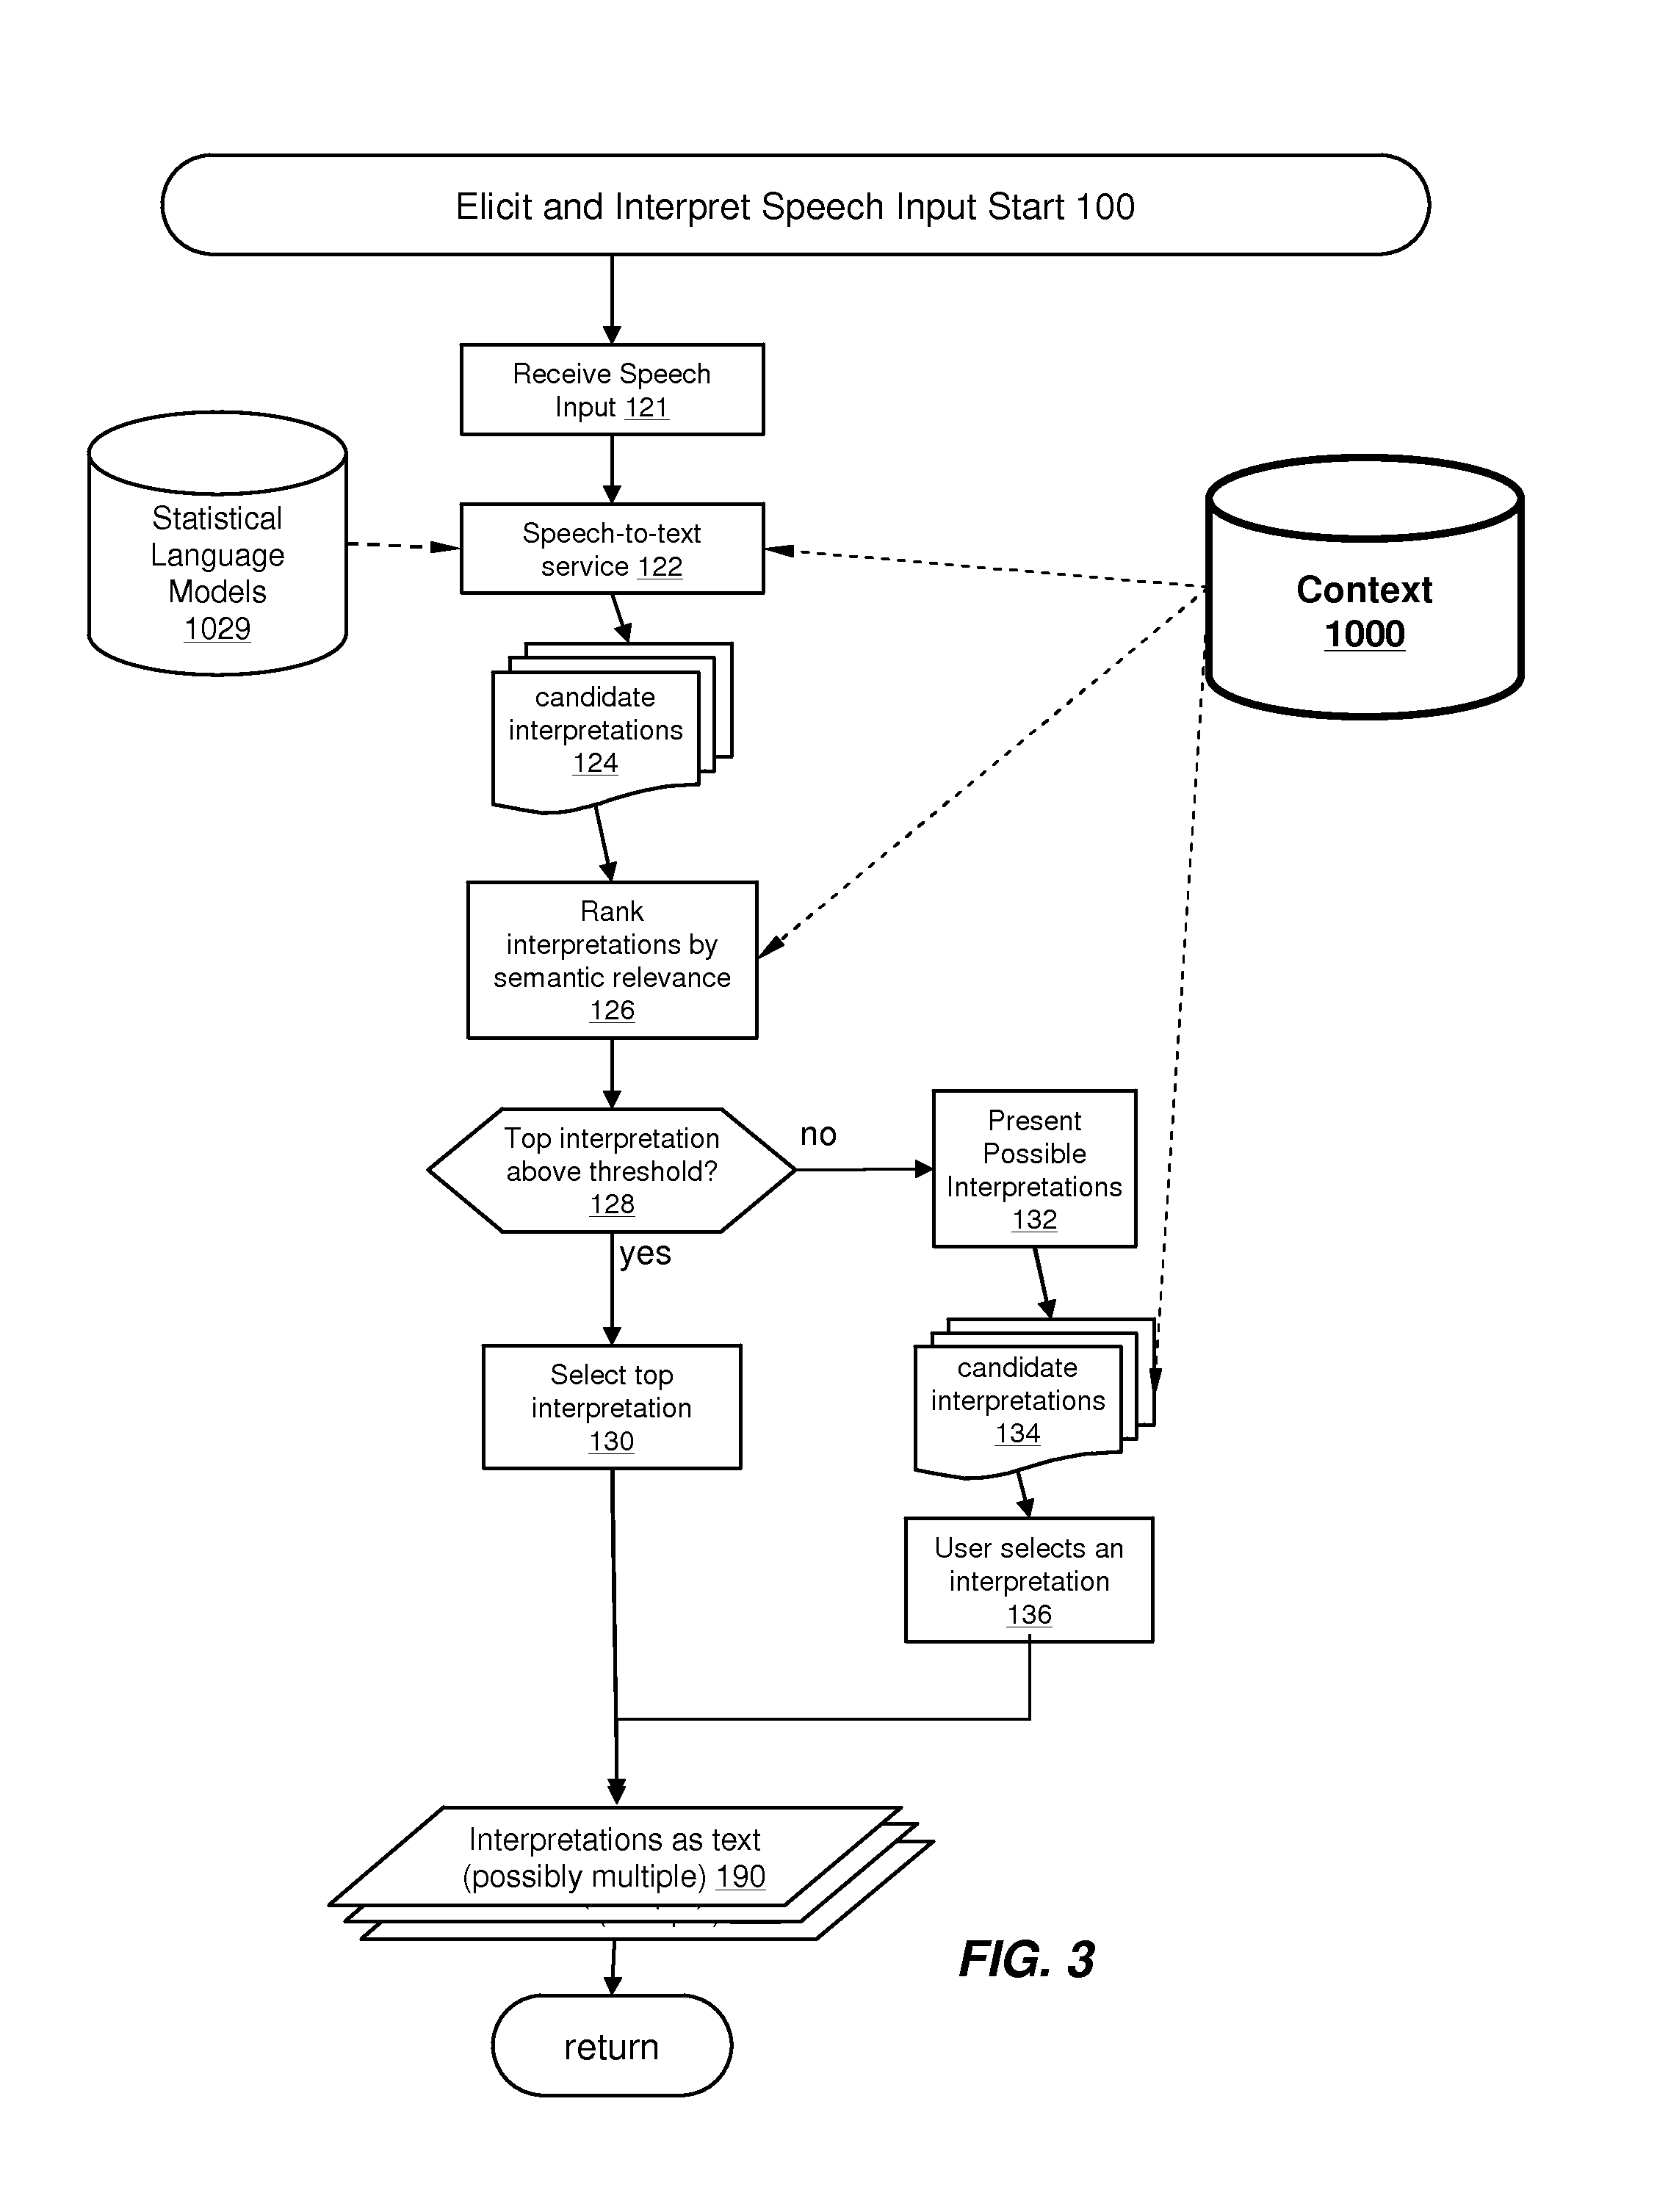 us20120265528a1 using context information to facilitate processing Photocell Wiring-Diagram us20120265528a1 using context information to facilitate processing of mands in a virtual assistant patents